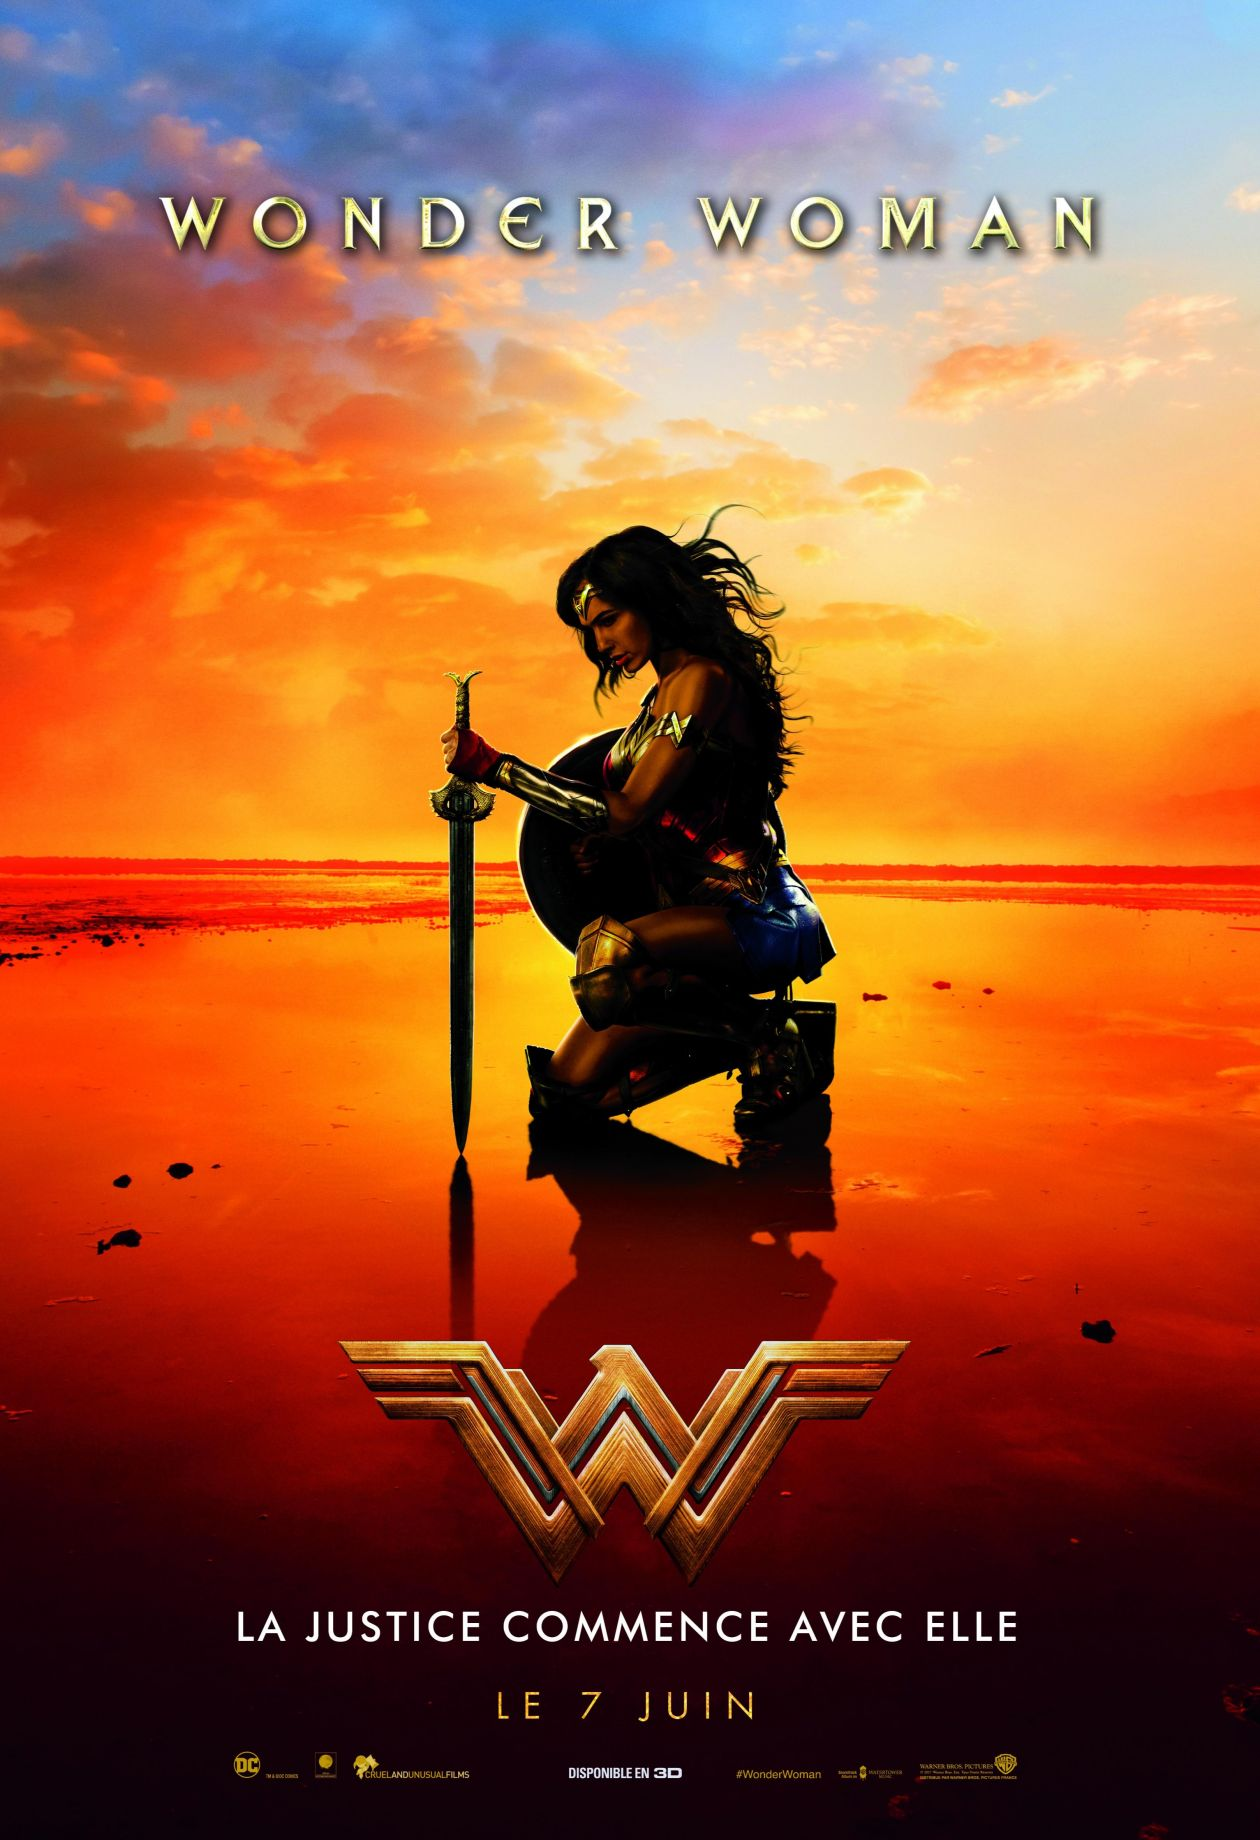 Gal Gadot actress | Wonder Woman / Patty Jenkins 2017 Movie Poster Affiche film